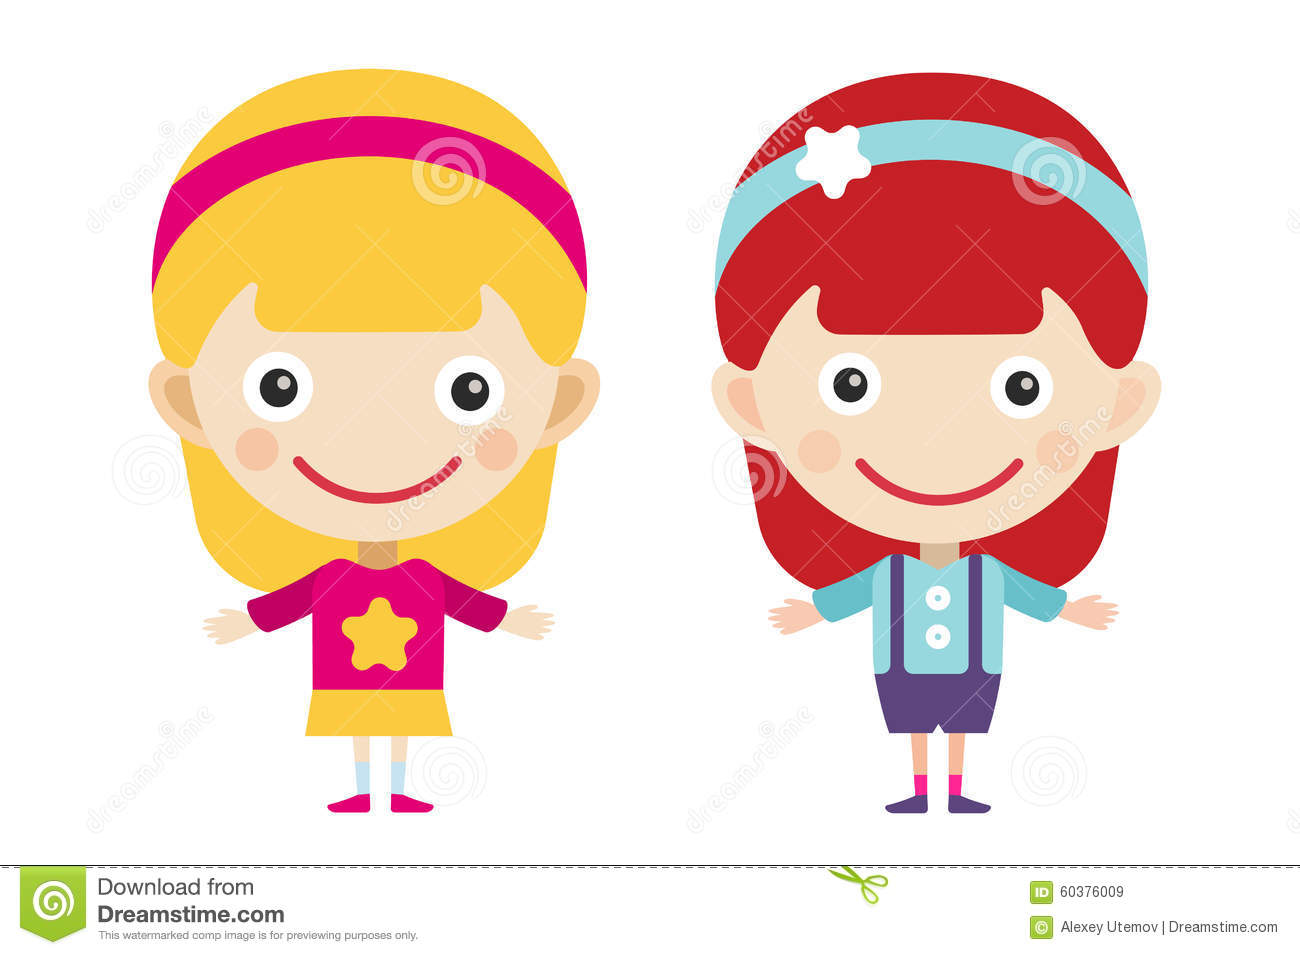 The dress blonde redhead - Redhead And Blonde Cartoon Vector Girls In Royalty Free Stock Images